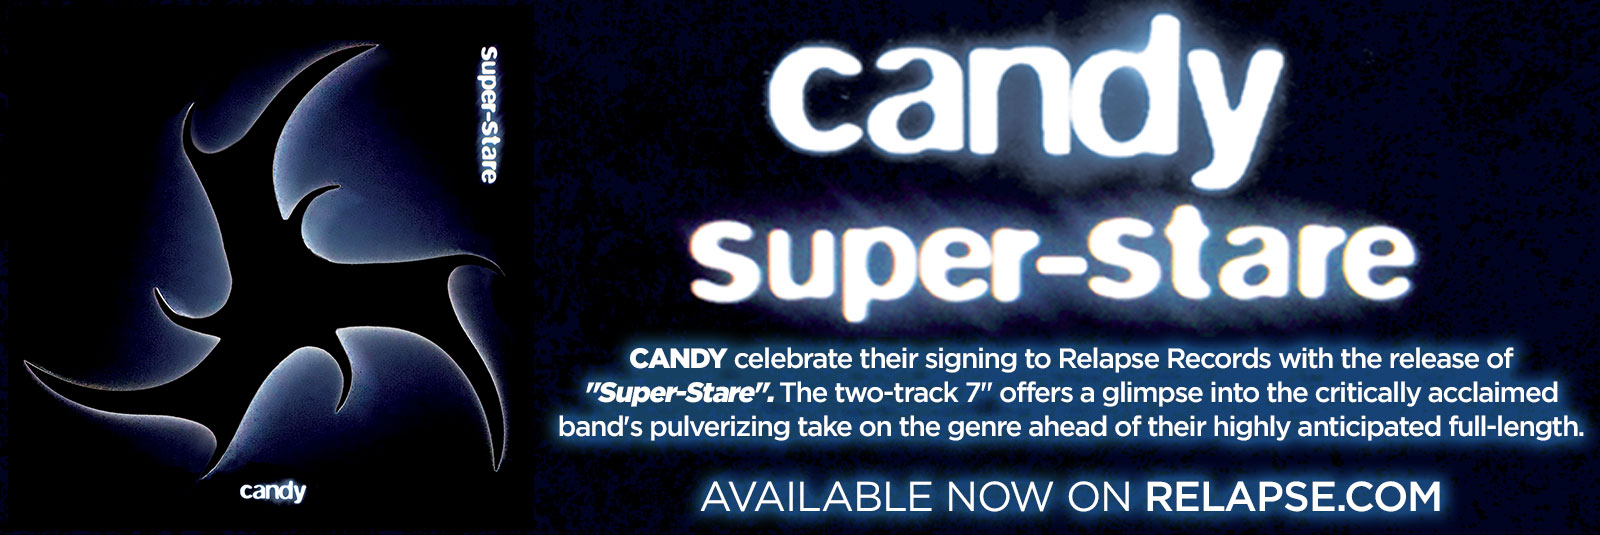 candy-super-stare-hardcore-metalcore-relapse